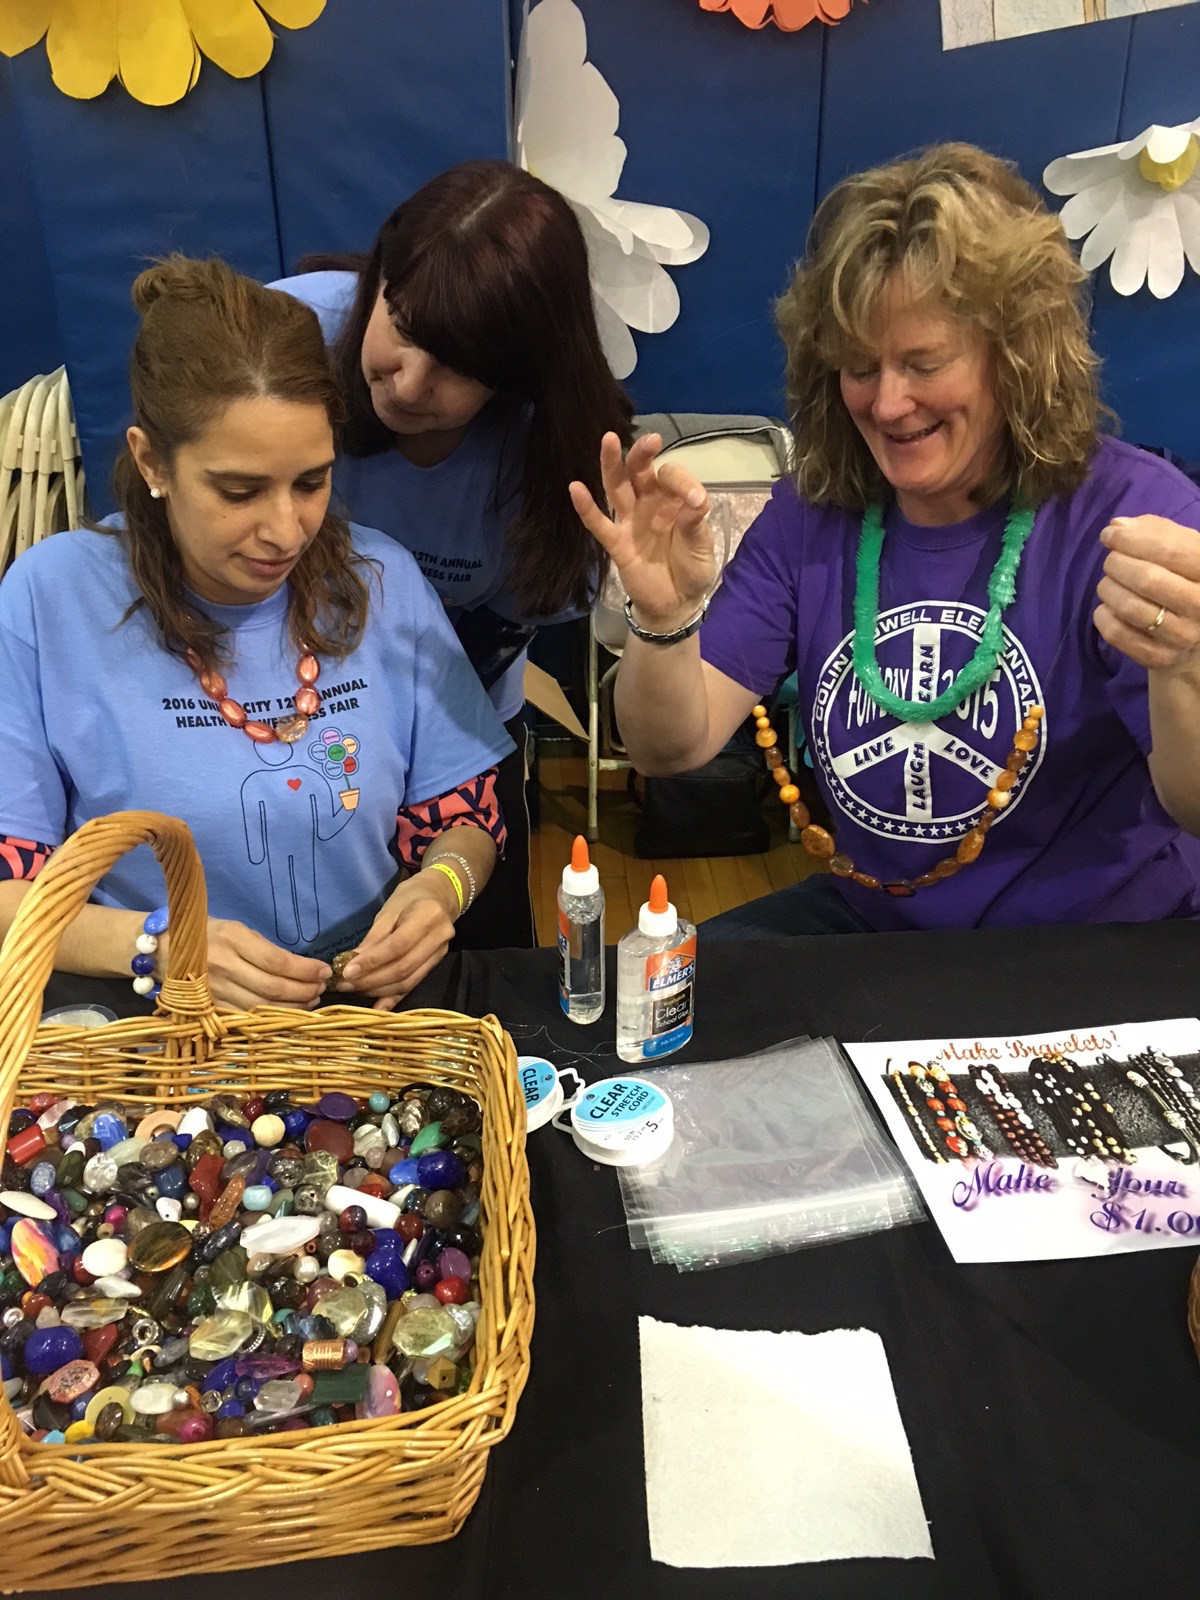 Fair volunteers doing crafts with young children